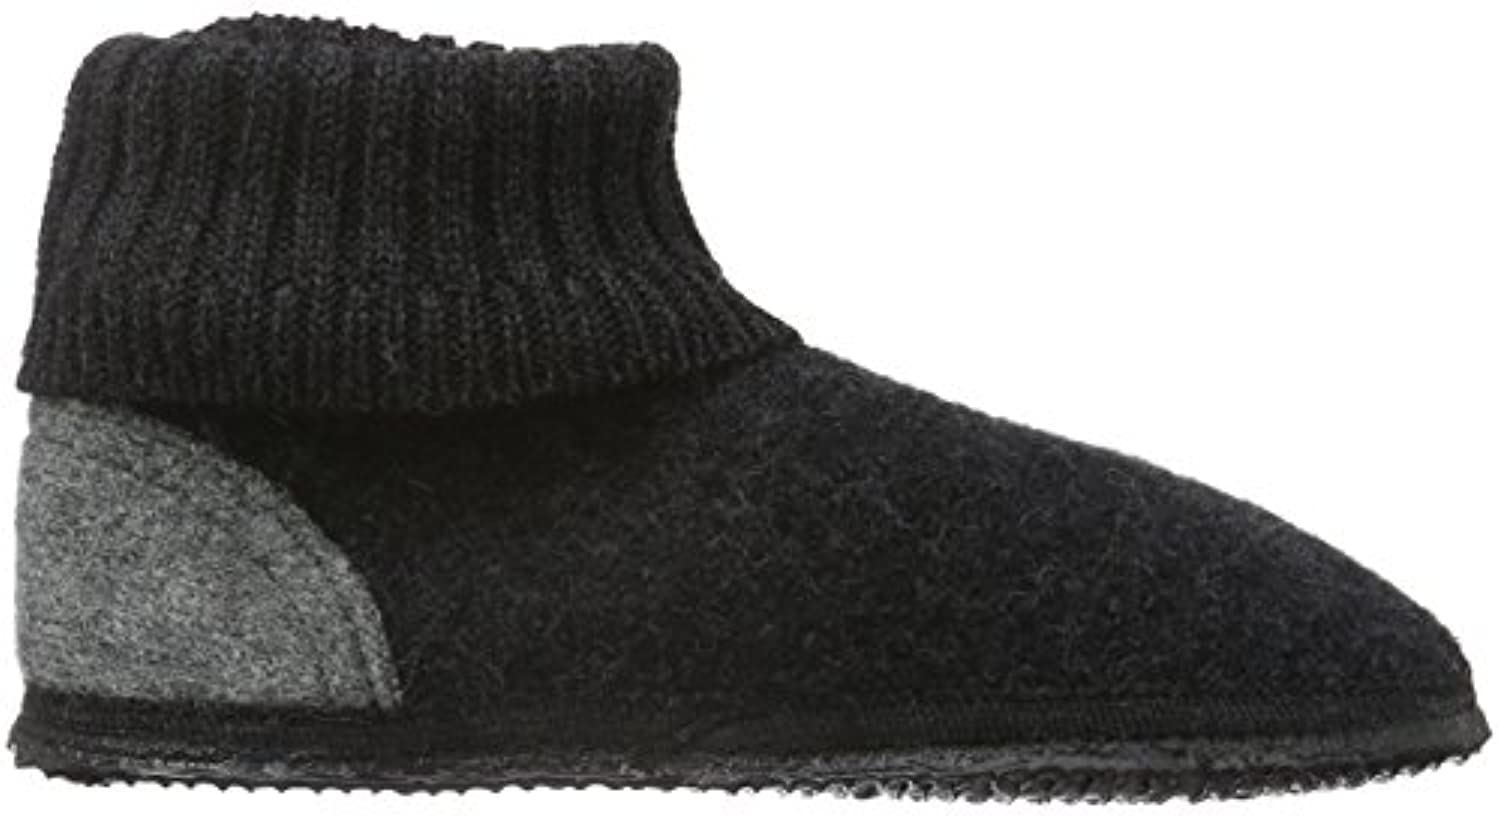 Giesswein Kramsach, Unisex Kids' Low-Top Slippers, Grey (028 / Nachtgrau), 7 Child UK (24 EU)